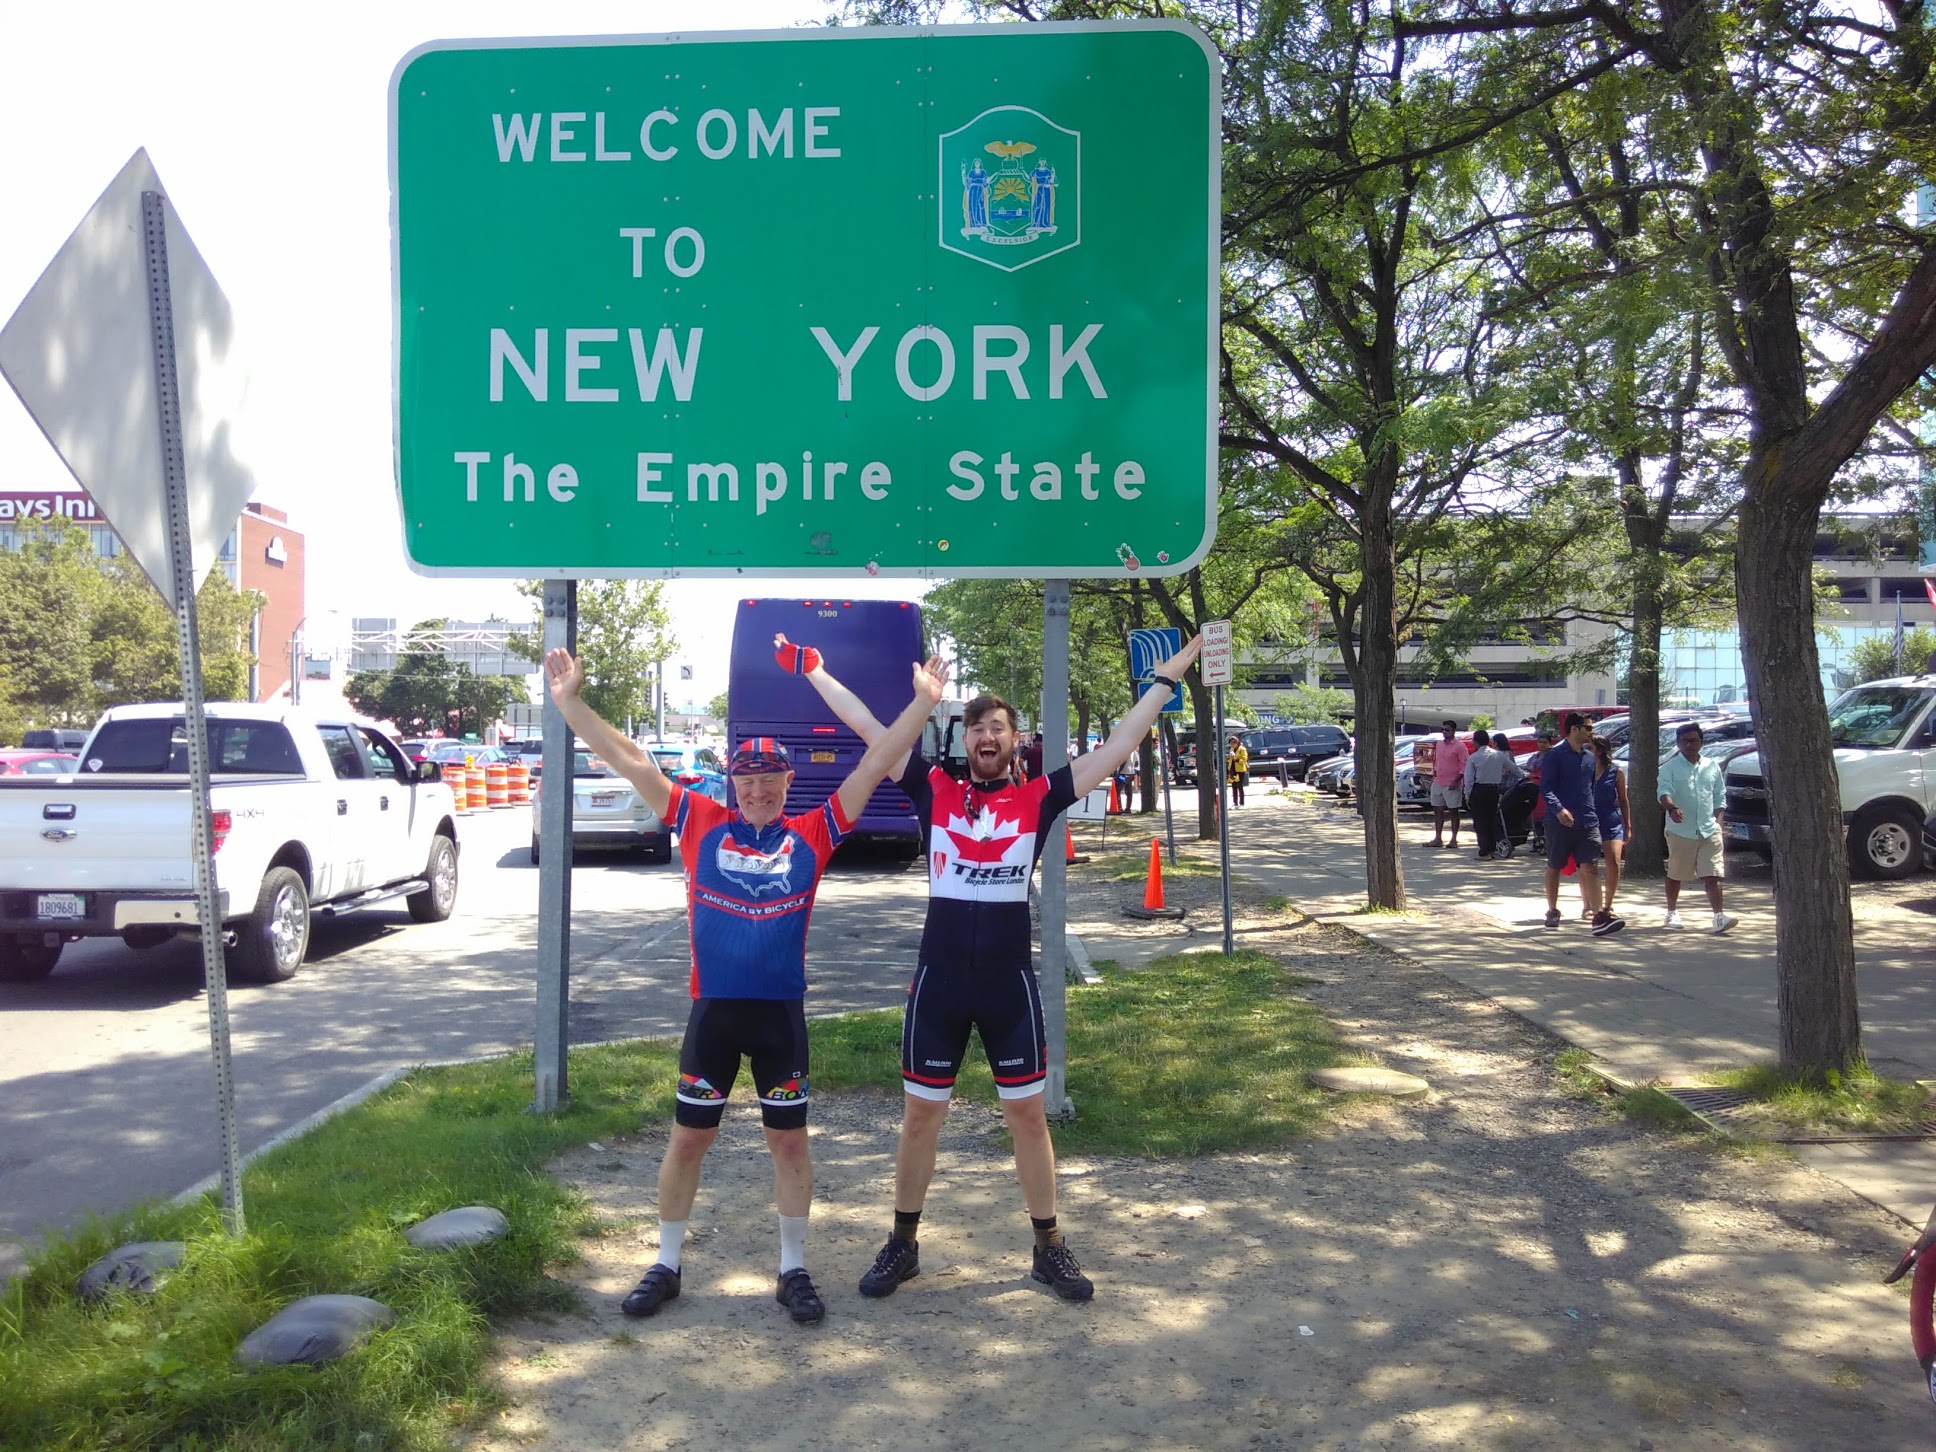 Chris and James make a Y sign with their arms in front of the Welcome to New York sign